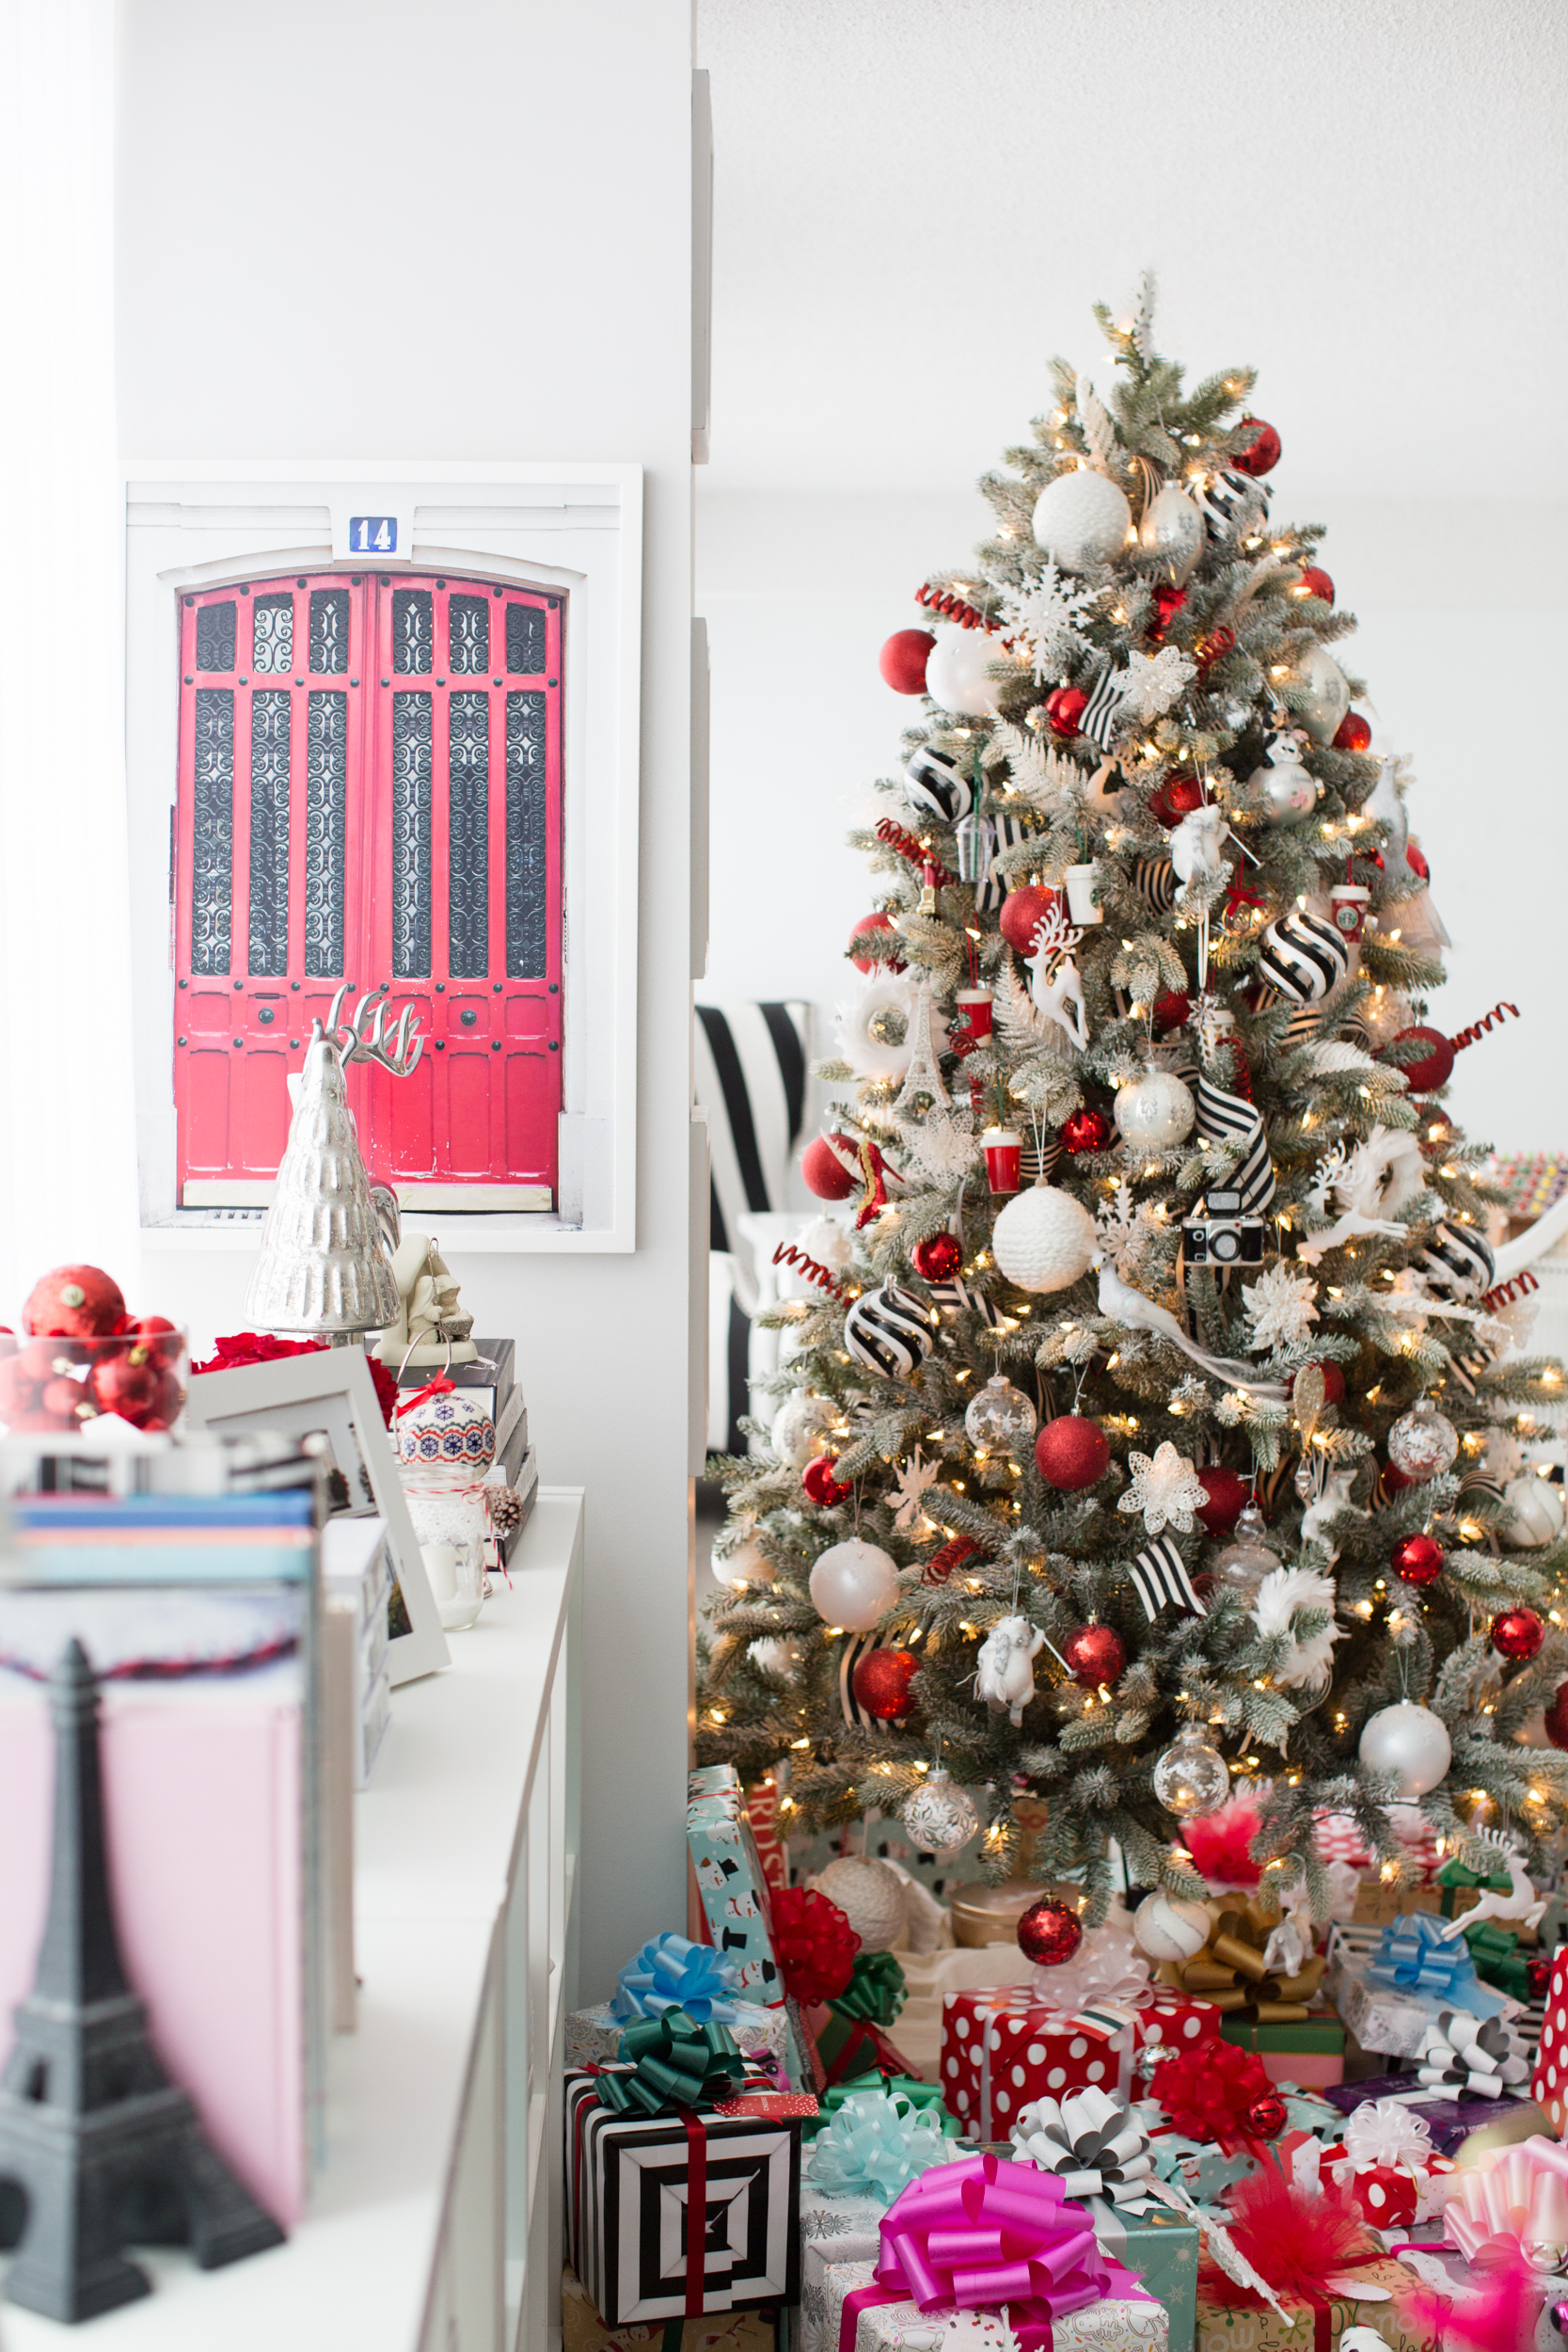 best re you love s the i trends image land southern so not prep our guess monogramming t four sweet middle stockings are expensive they blog barns think ones christmas sale don from end is but pottery look what barn tuesday and